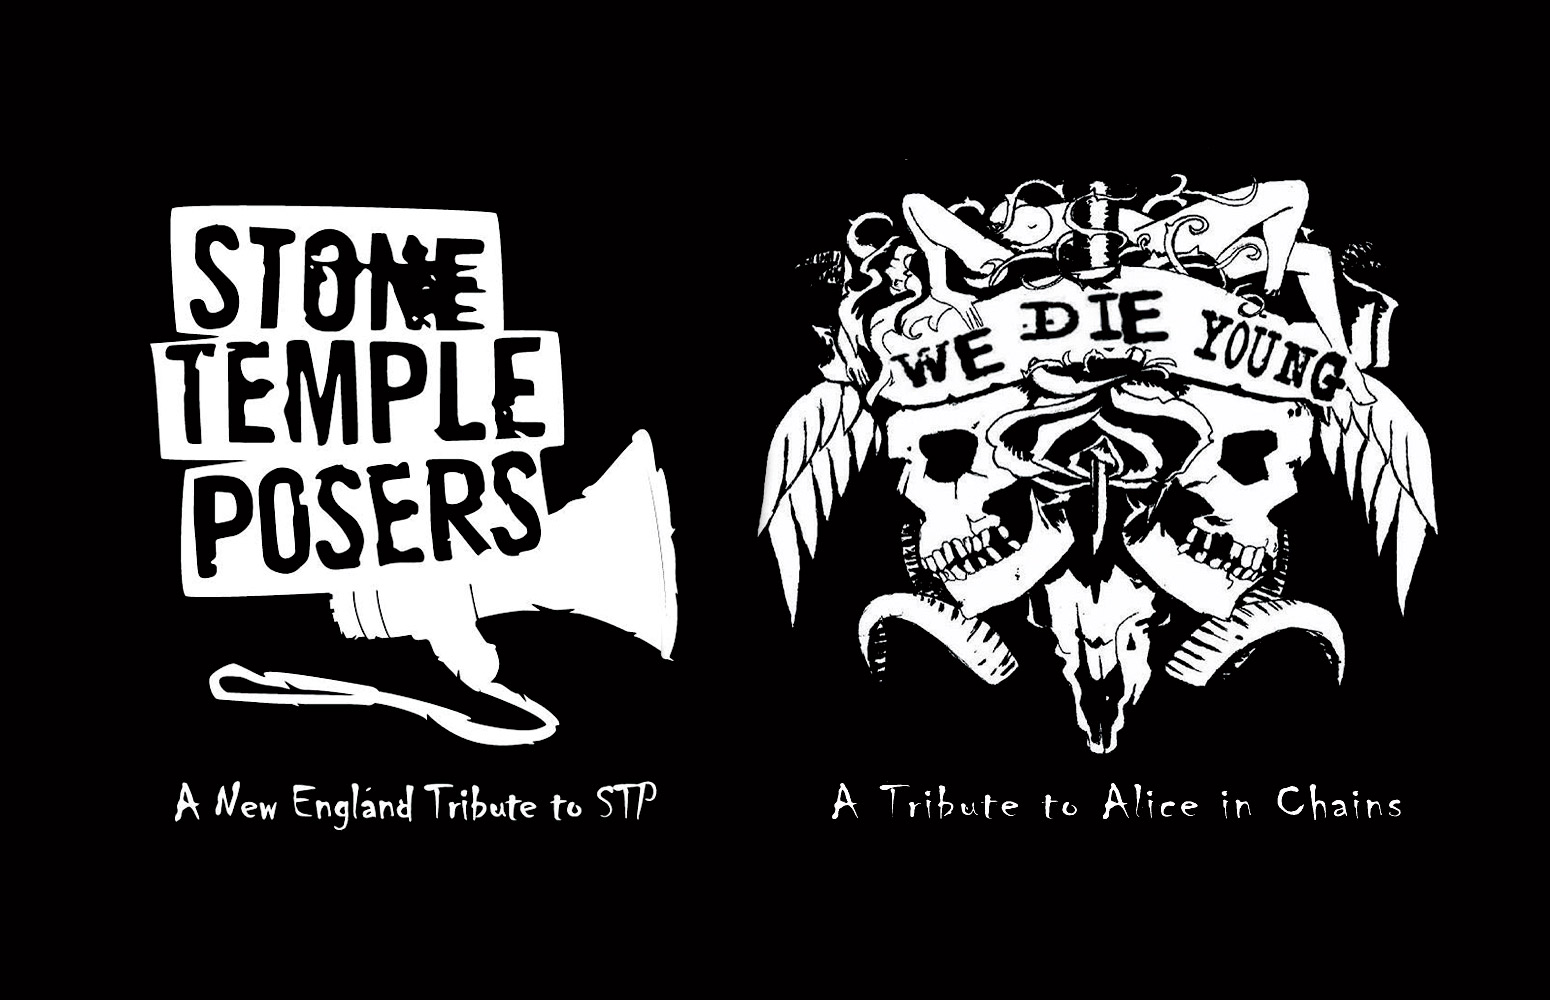 The Stone Temple Posers + We Die Young thumb